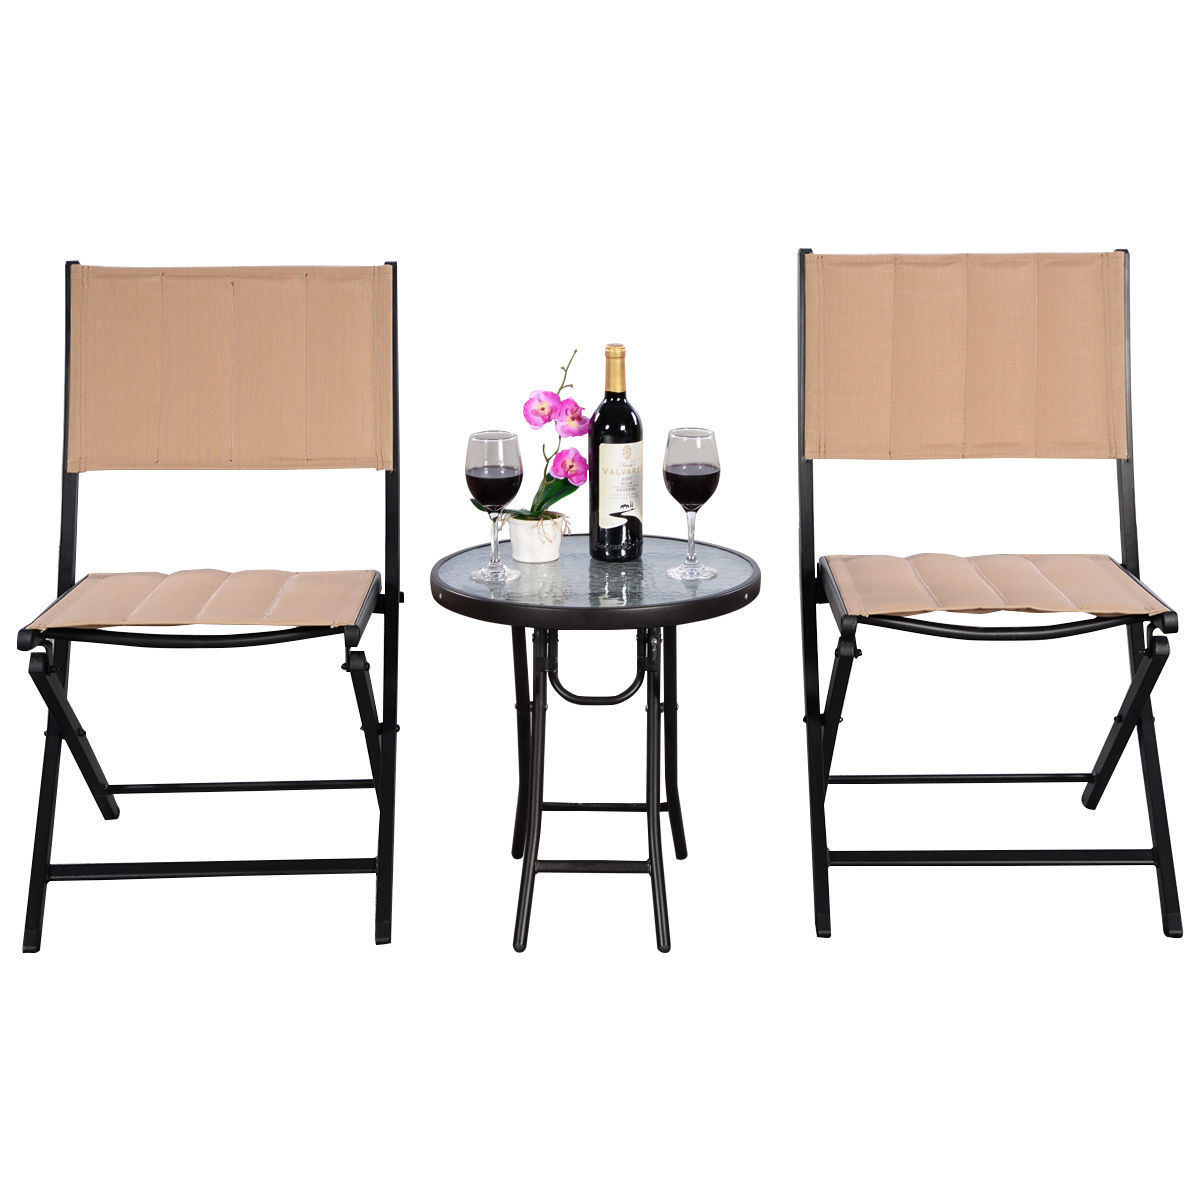 GHP Set of 3 Earthy Yellow Steel Textilenne & Aluminum Folding Round Table & 2 Chairs